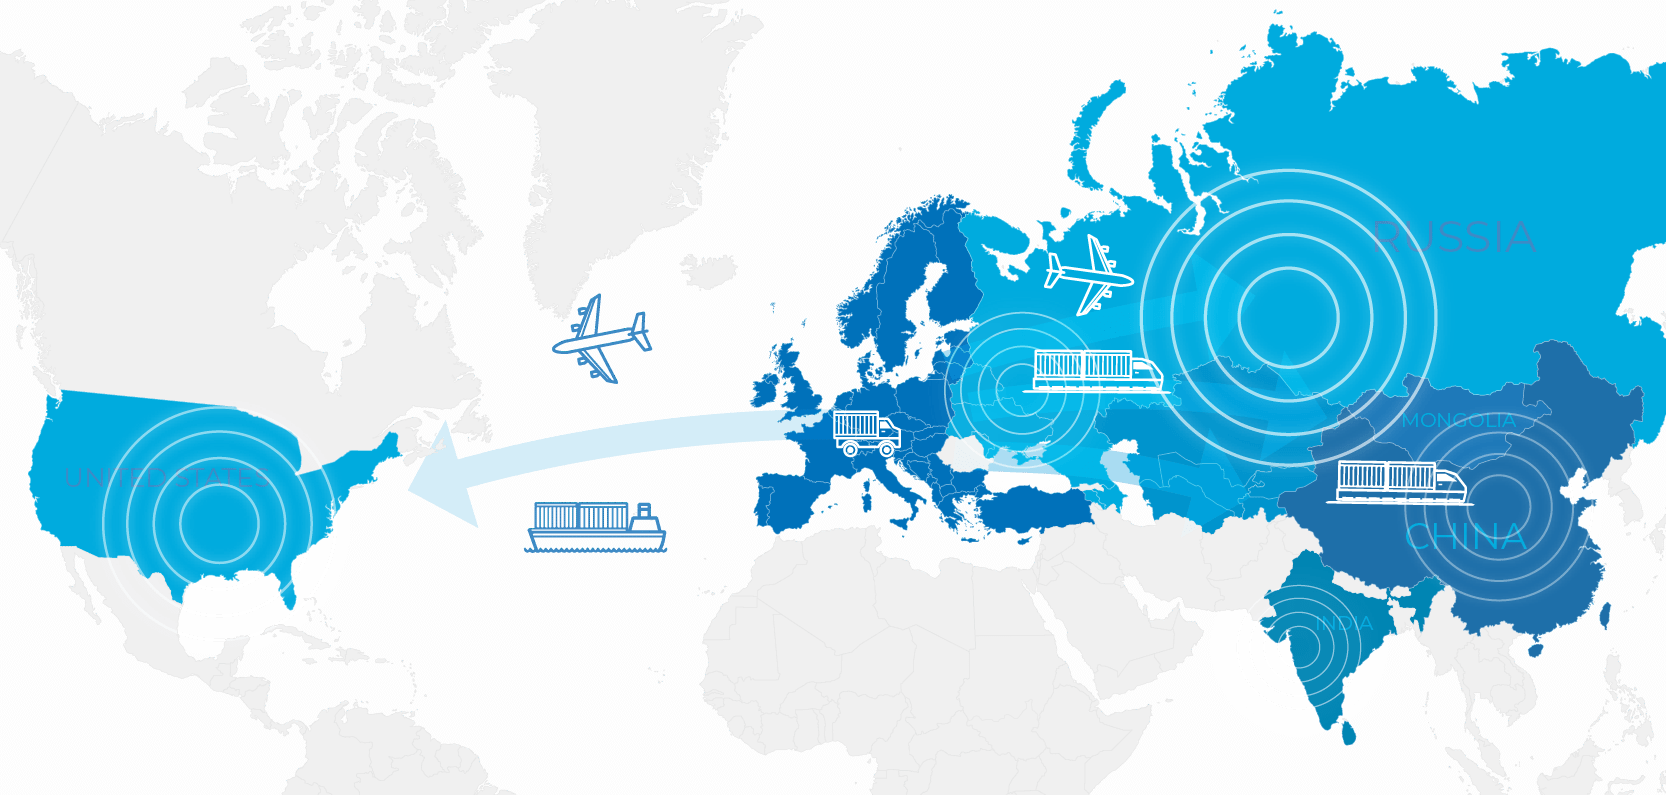 Map of the world displaying RTSB geographical business scopes